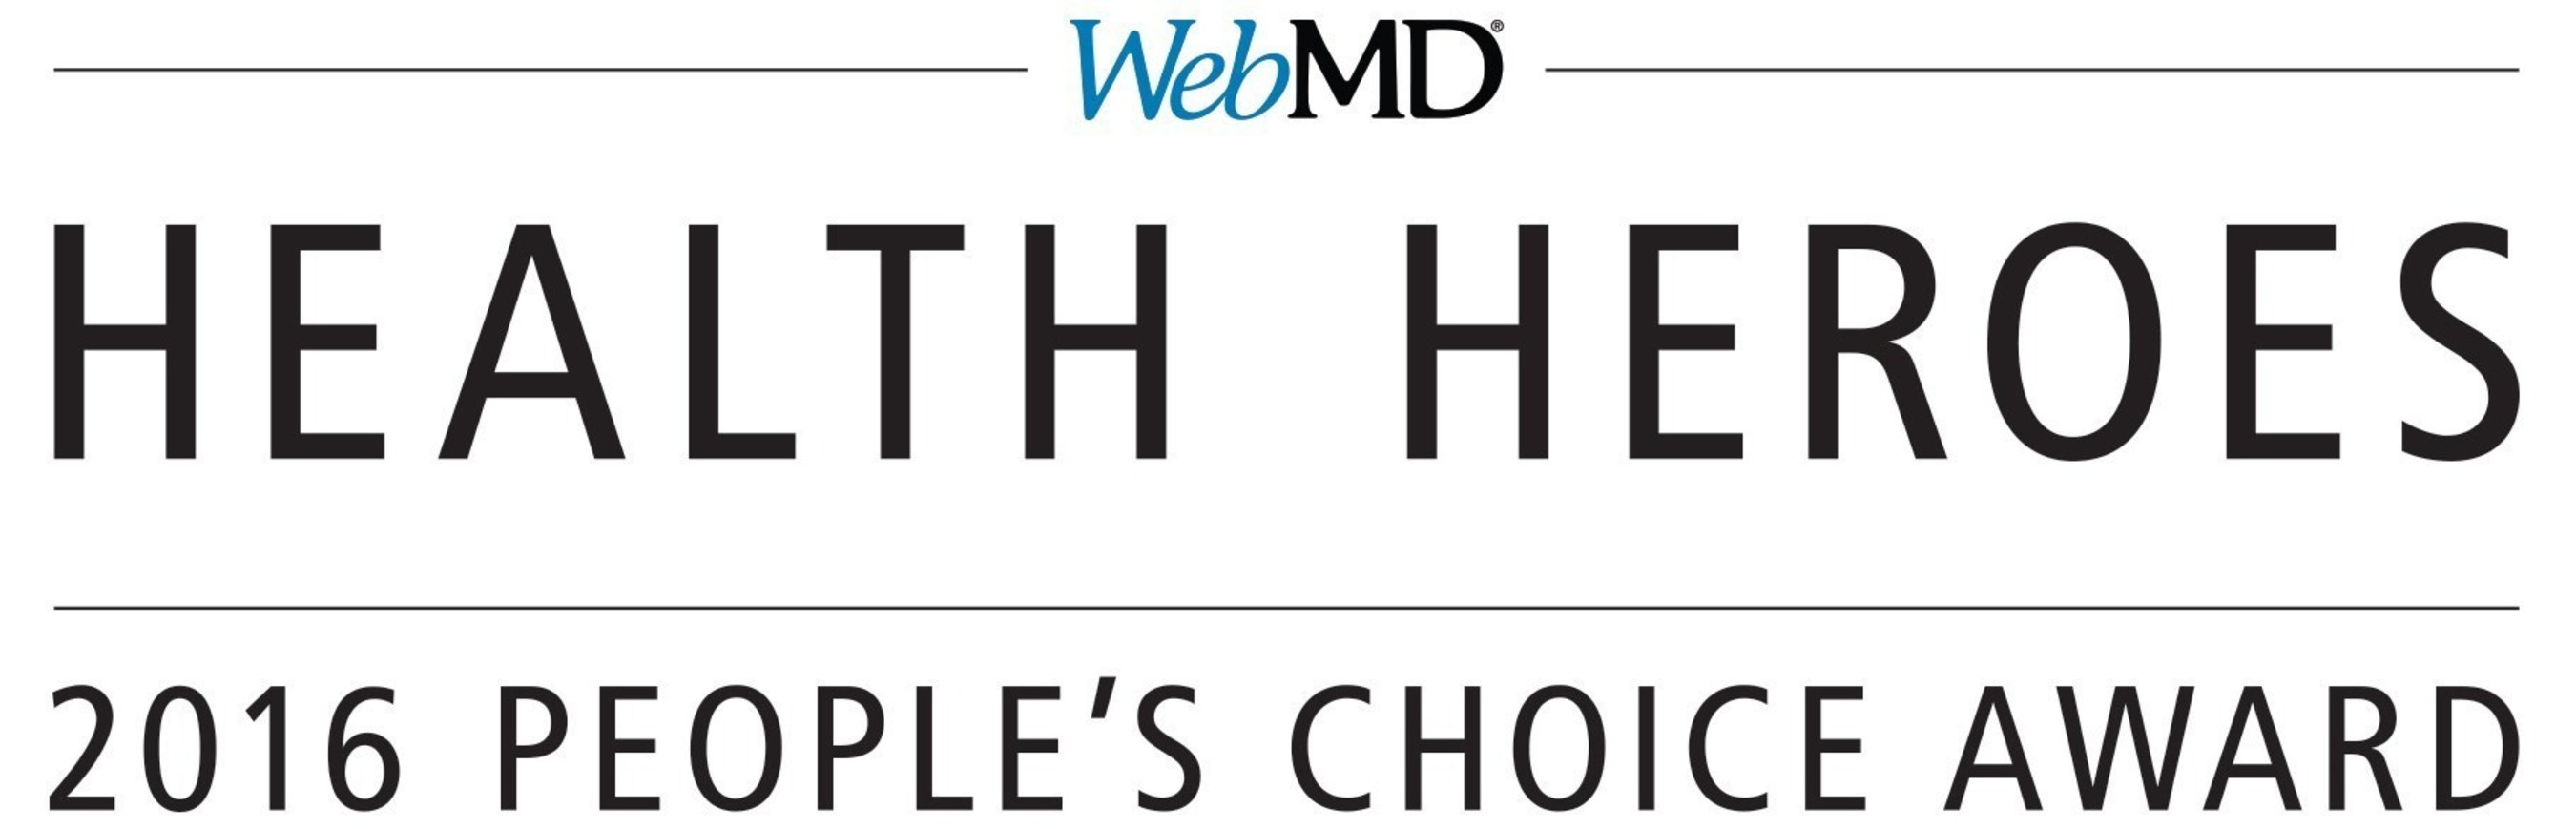 WebMD Announces 2016 People's Choice Award Nominees for Annual Health Hero Awards